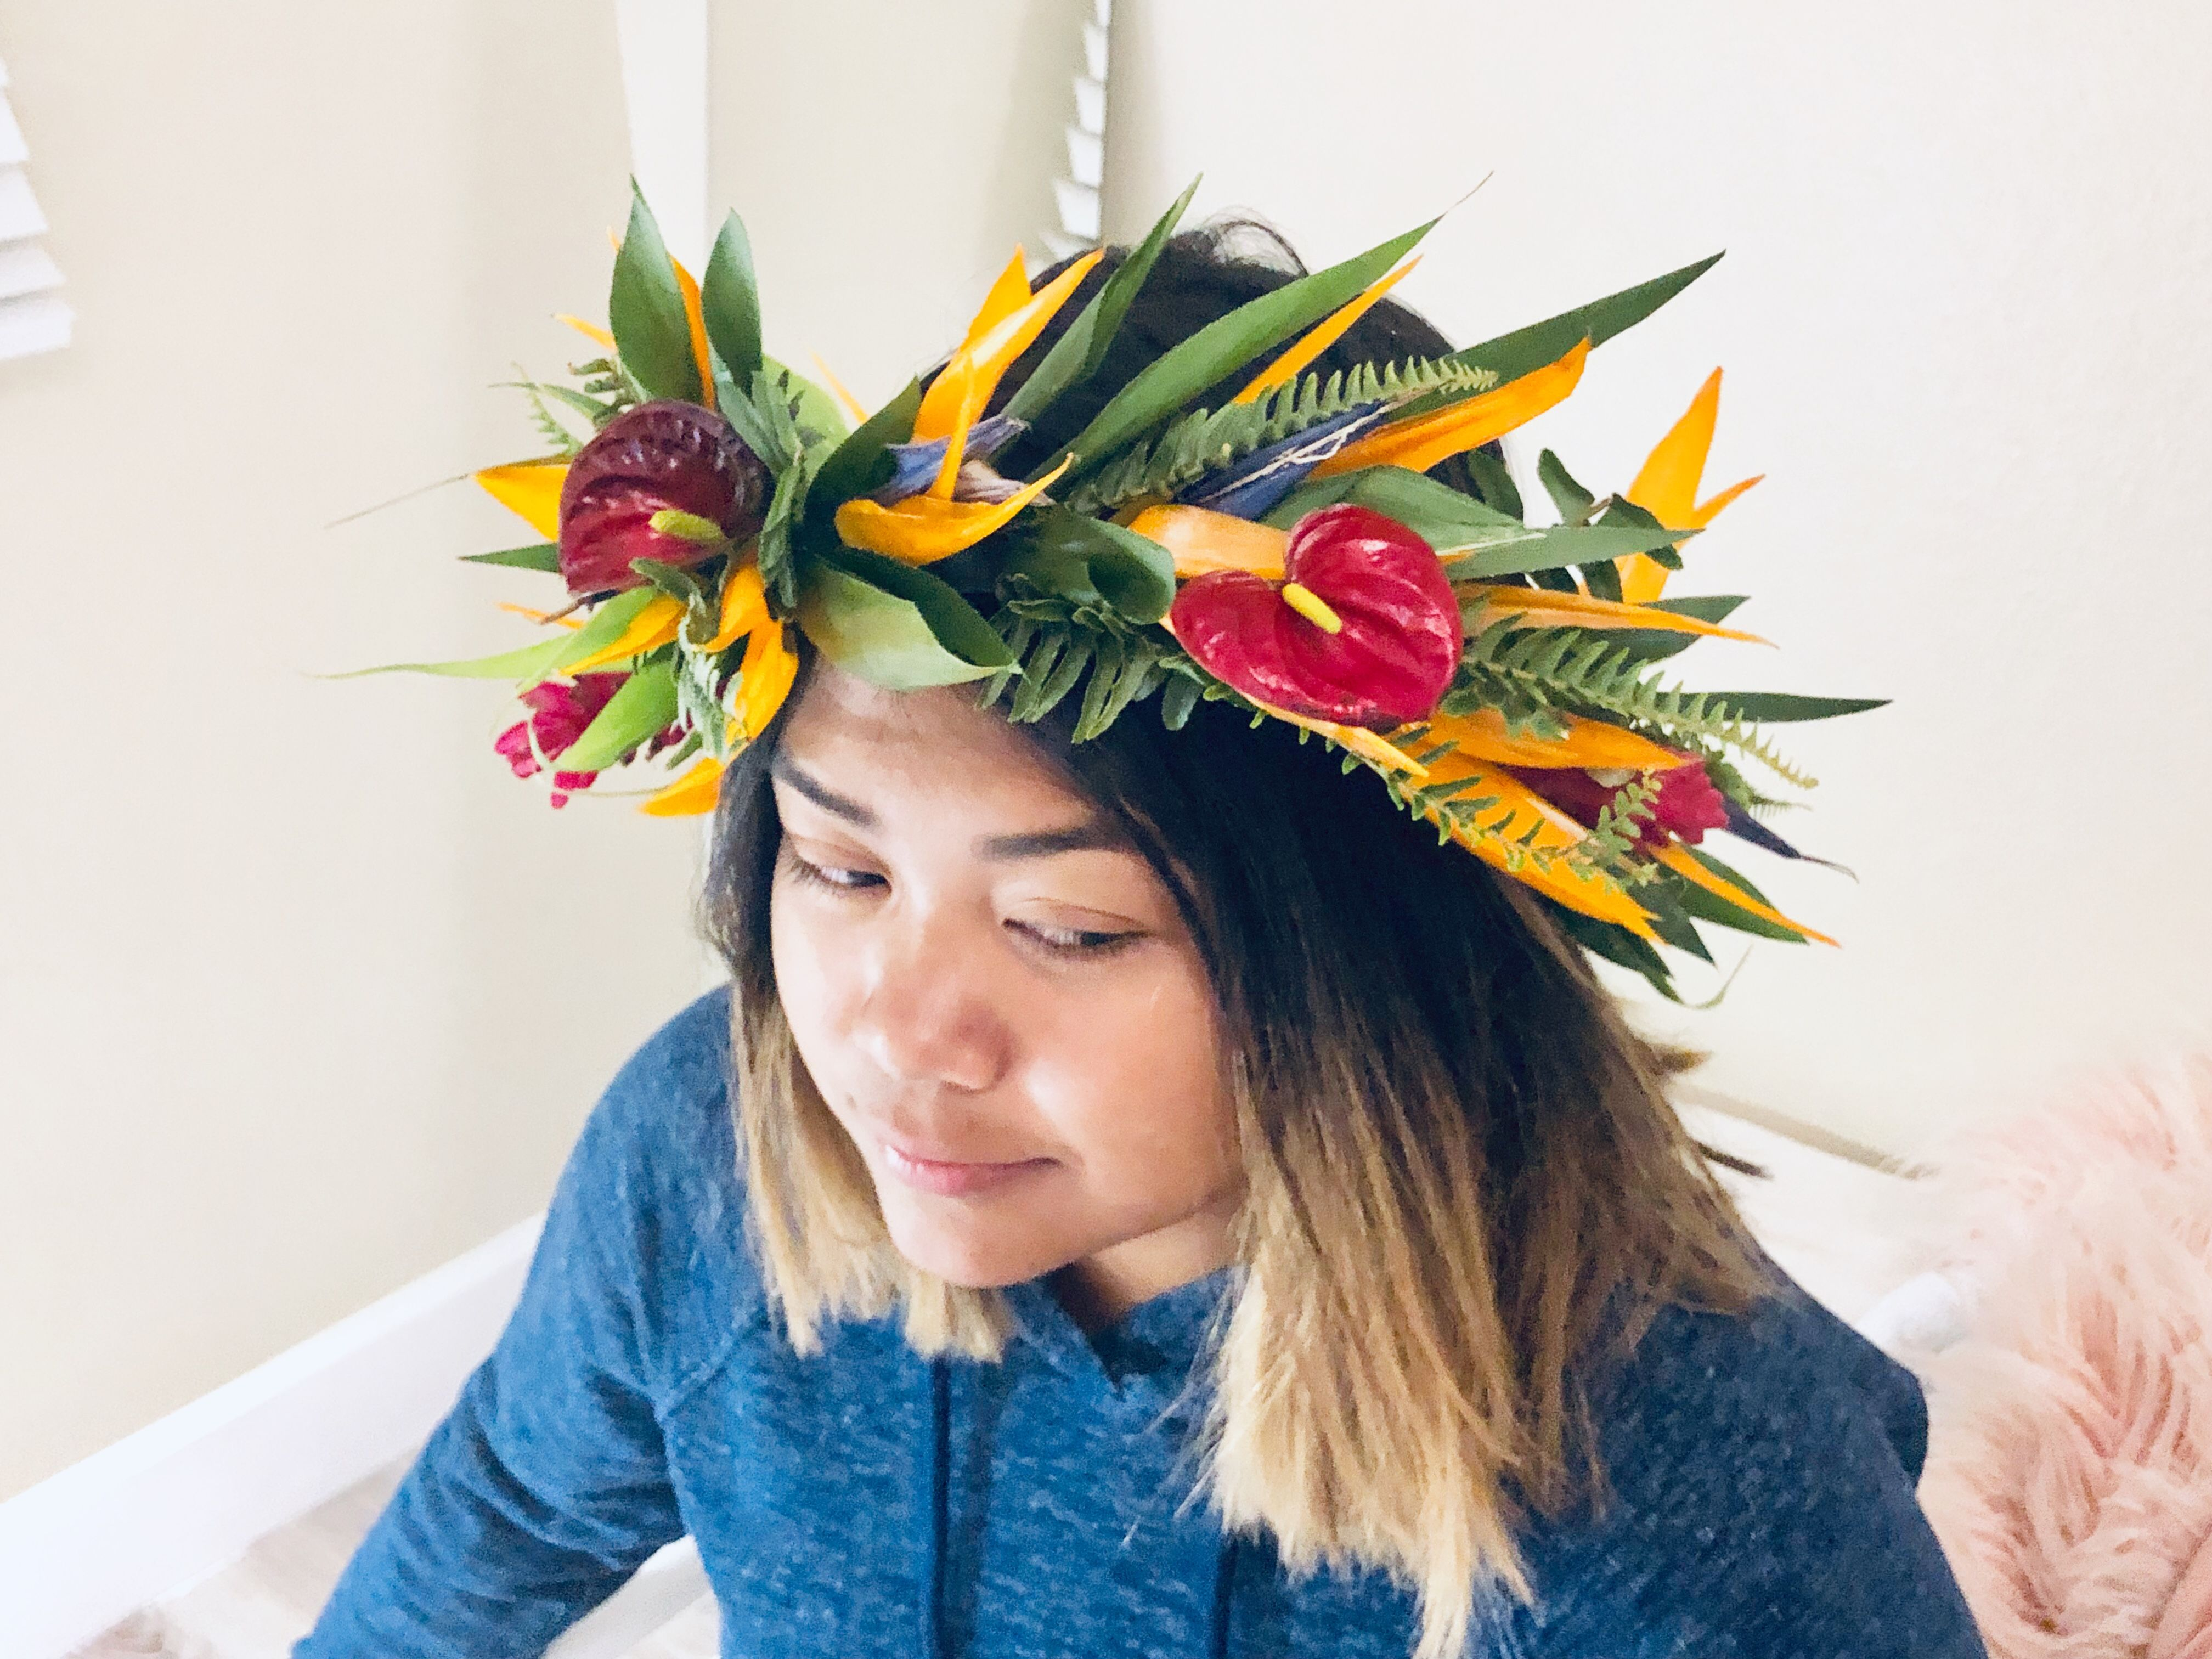 Diy Tropical Haku With Bird Of Paradise Red Ginger Red Antherium Ti Leaves Tropical Fern Birds Of Paradise Future Wedding Crown Jewelry